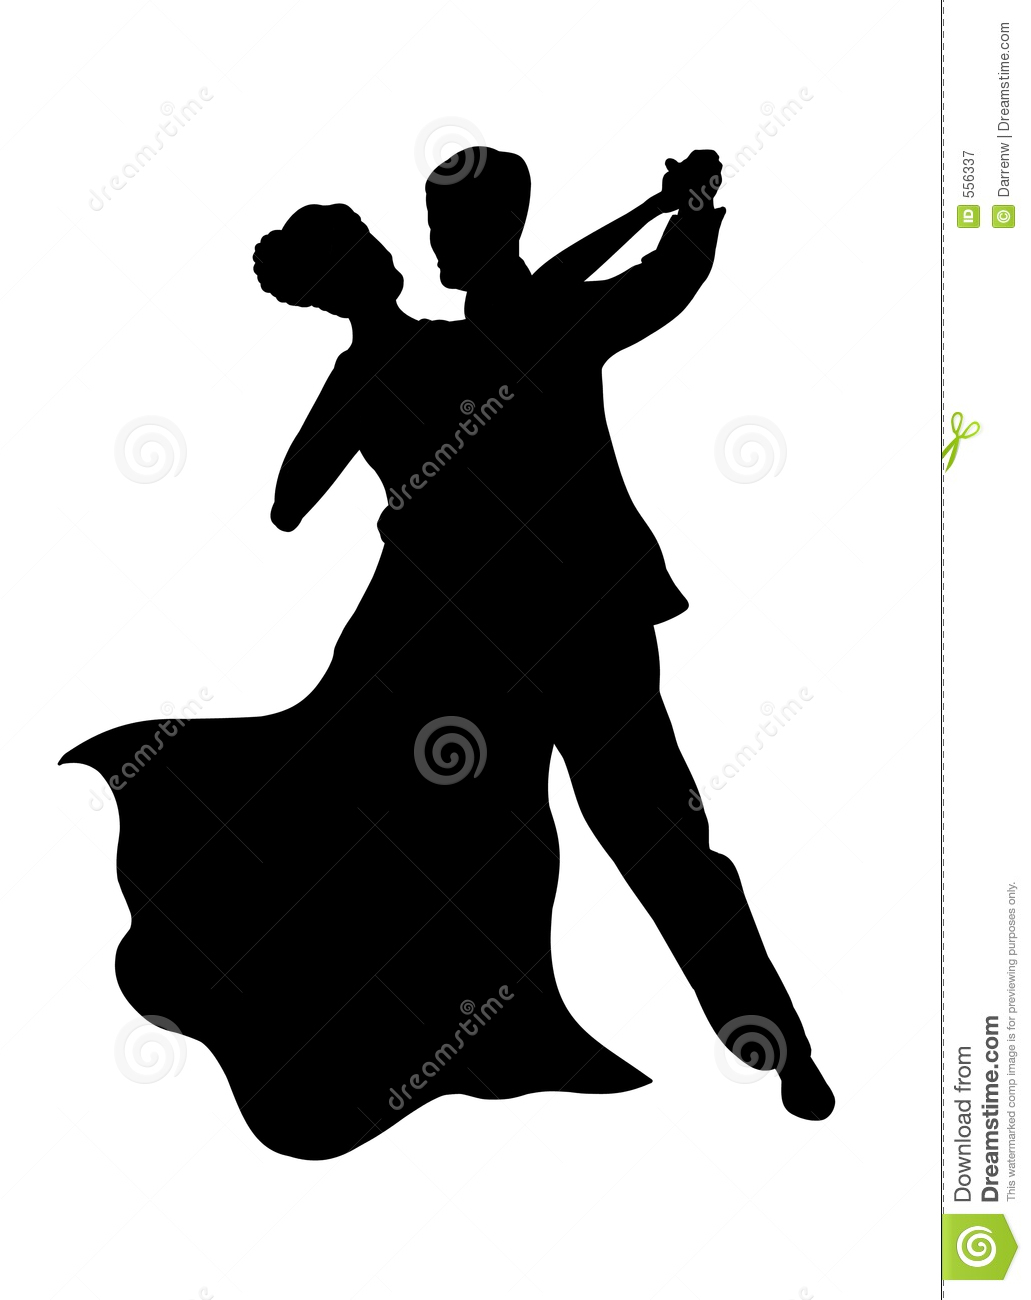 Danse clipart homecoming dance Of poster poster couple a